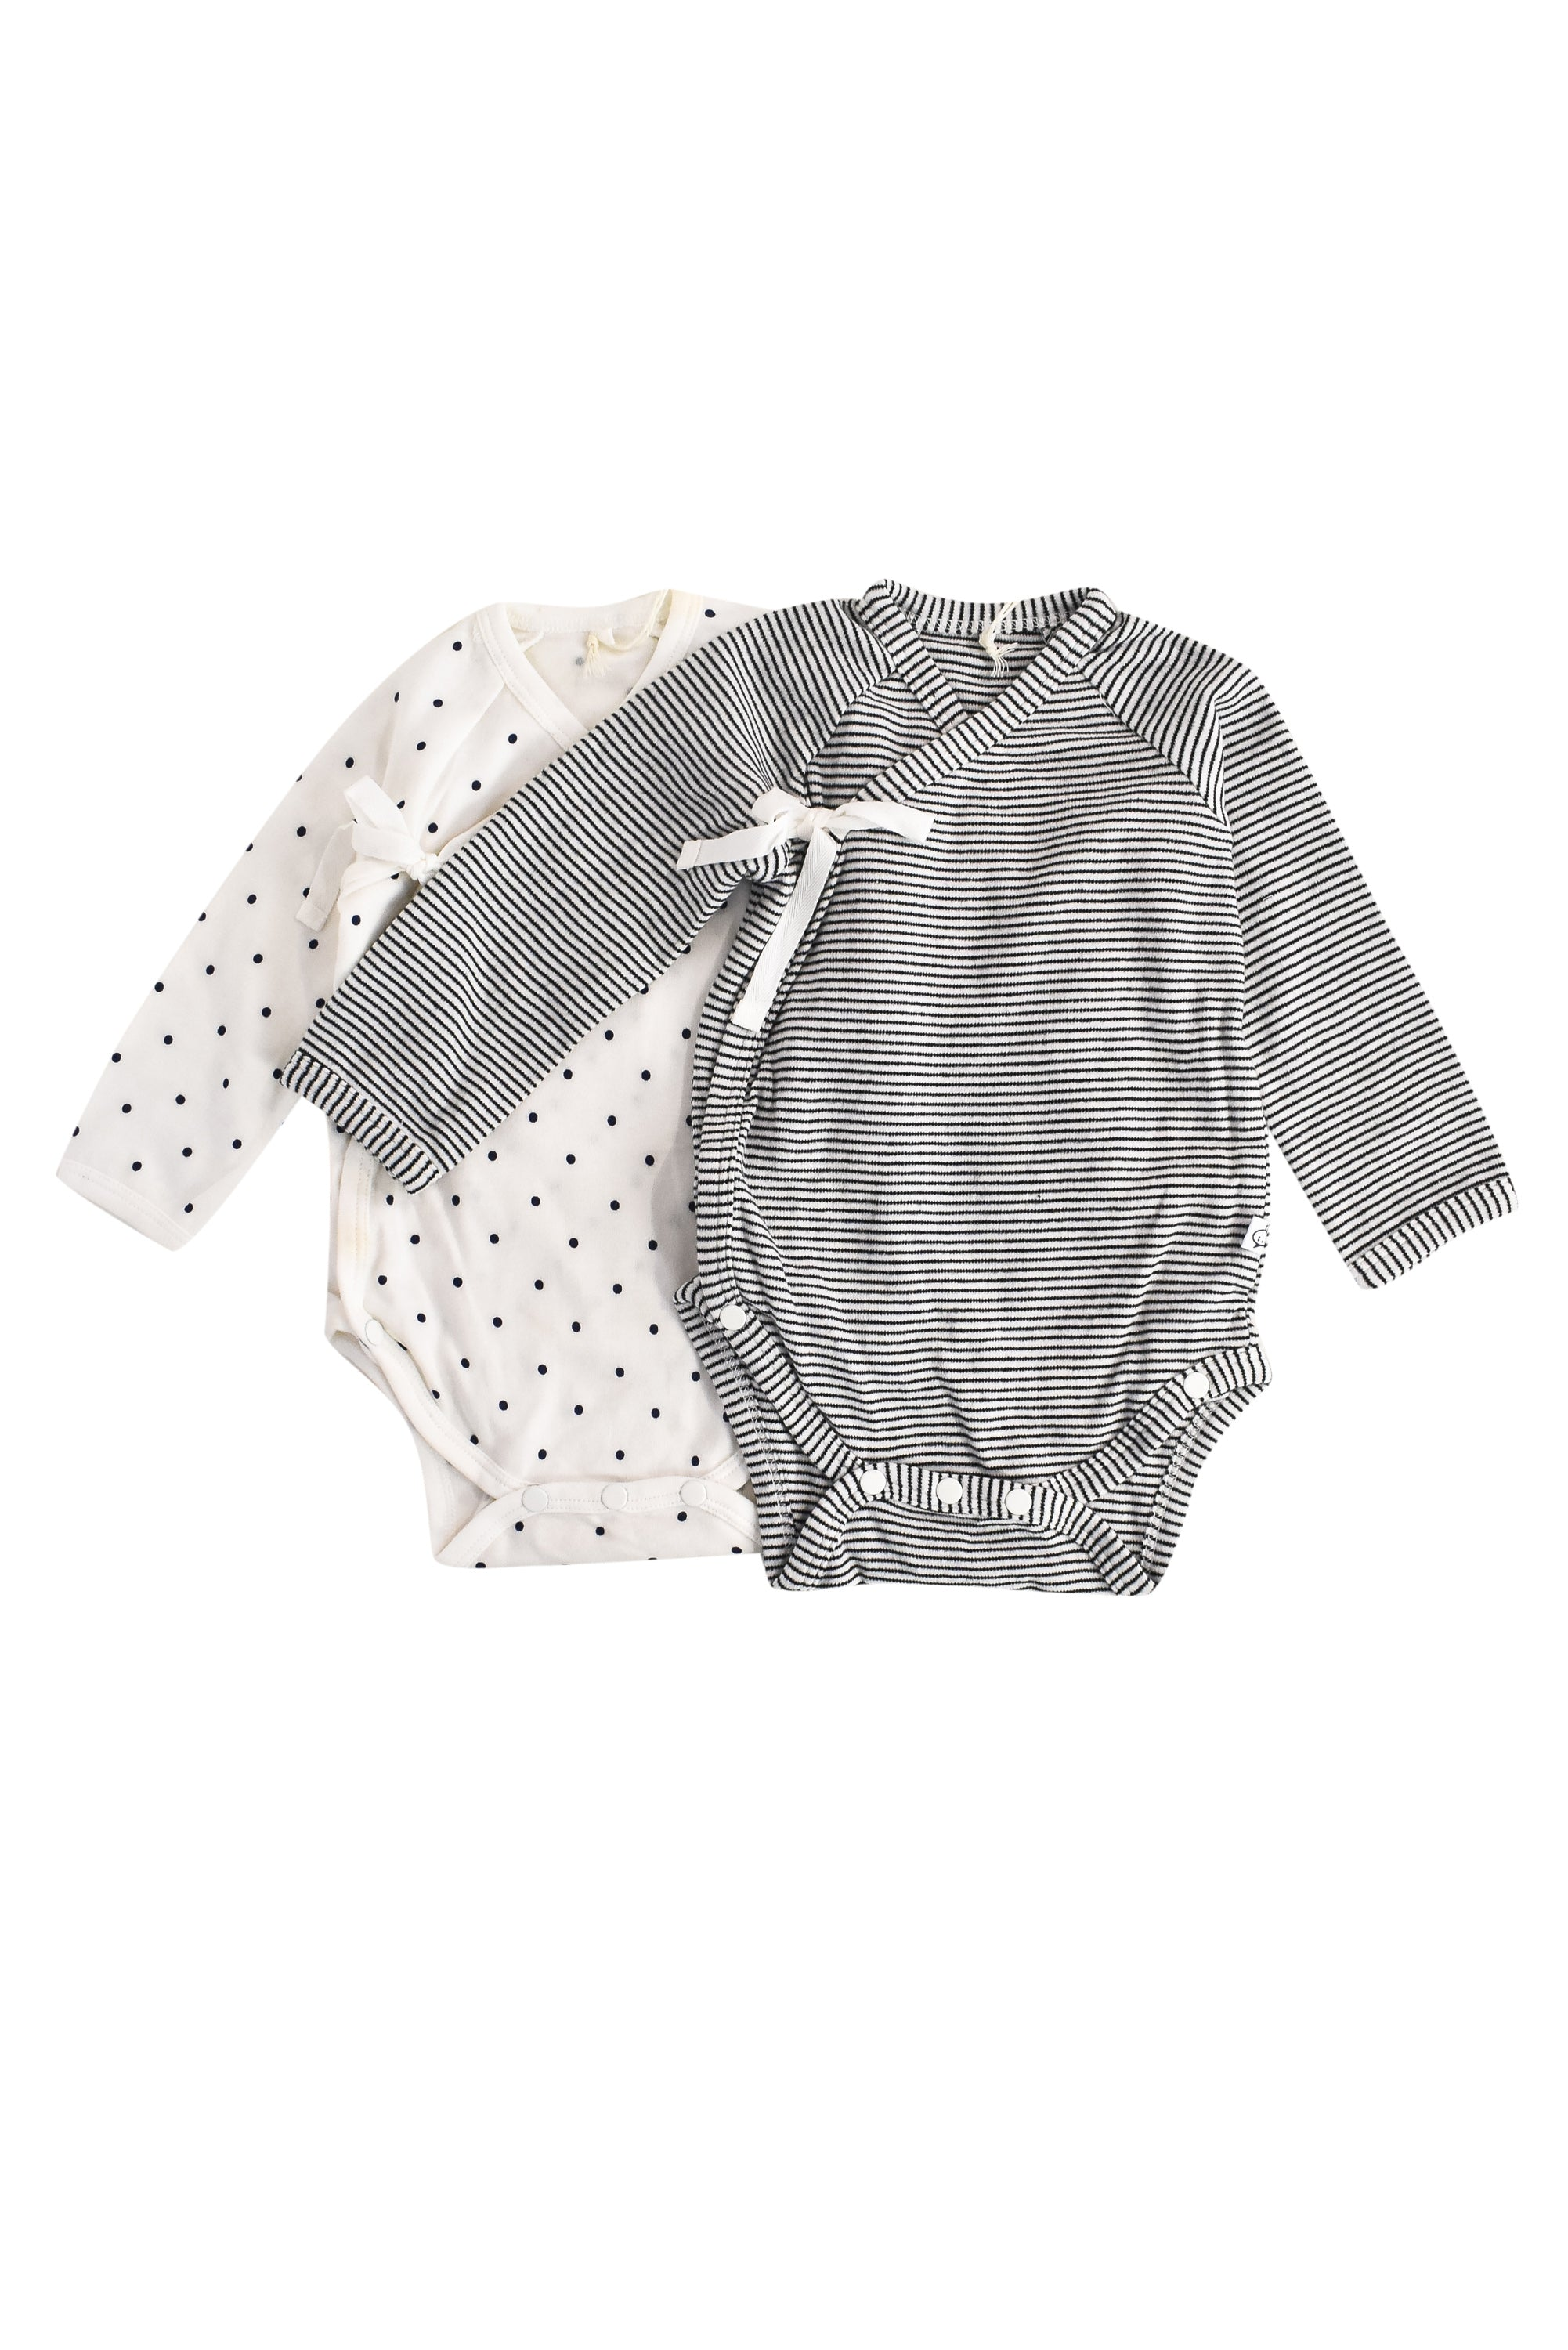 10041144 Babymio Baby~Bodysuit Set 3-6M at Retykle